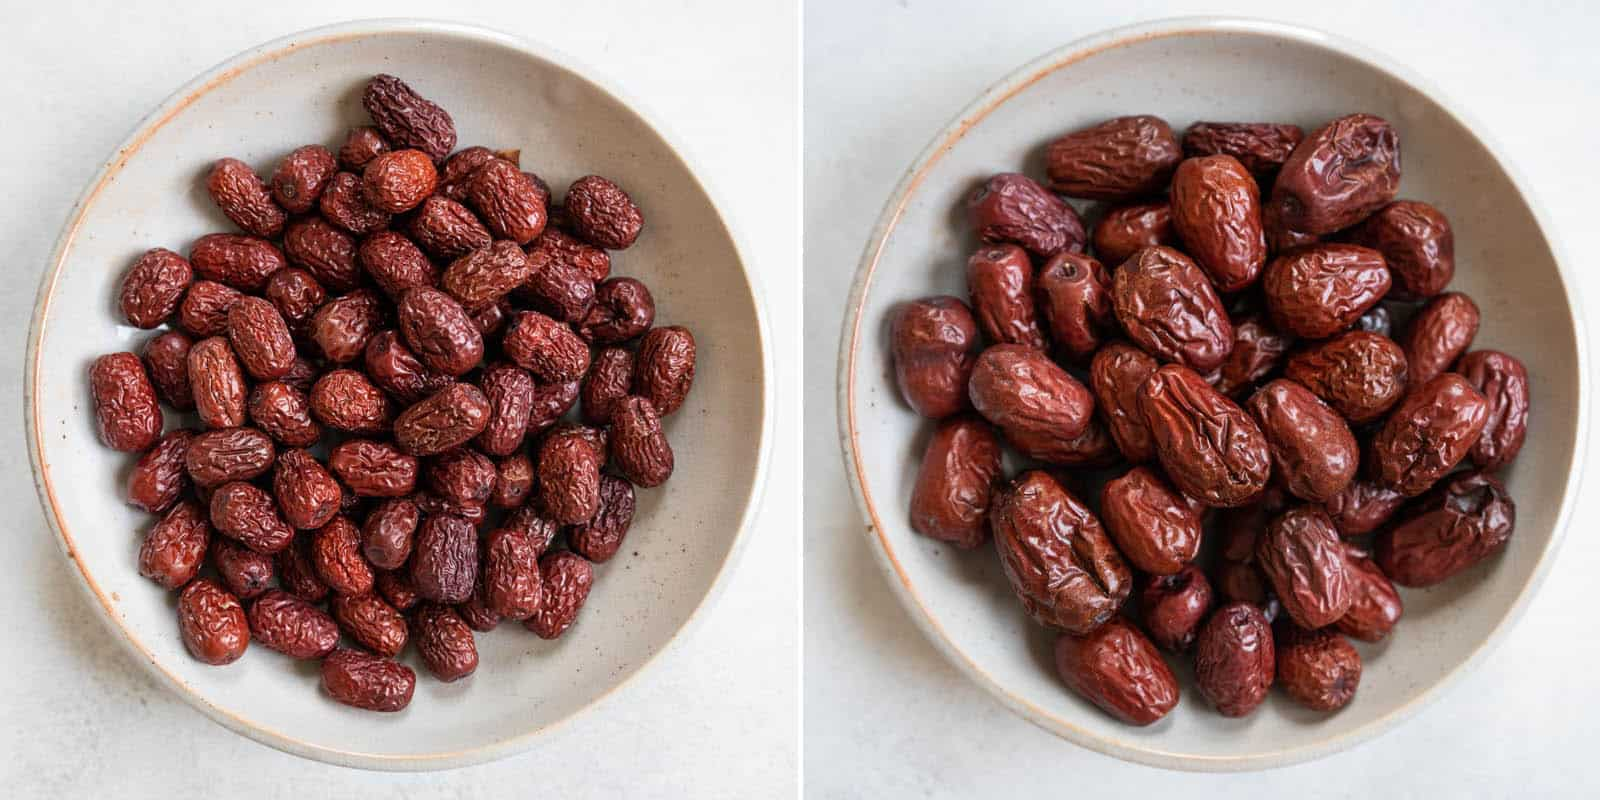 Small and large red dates